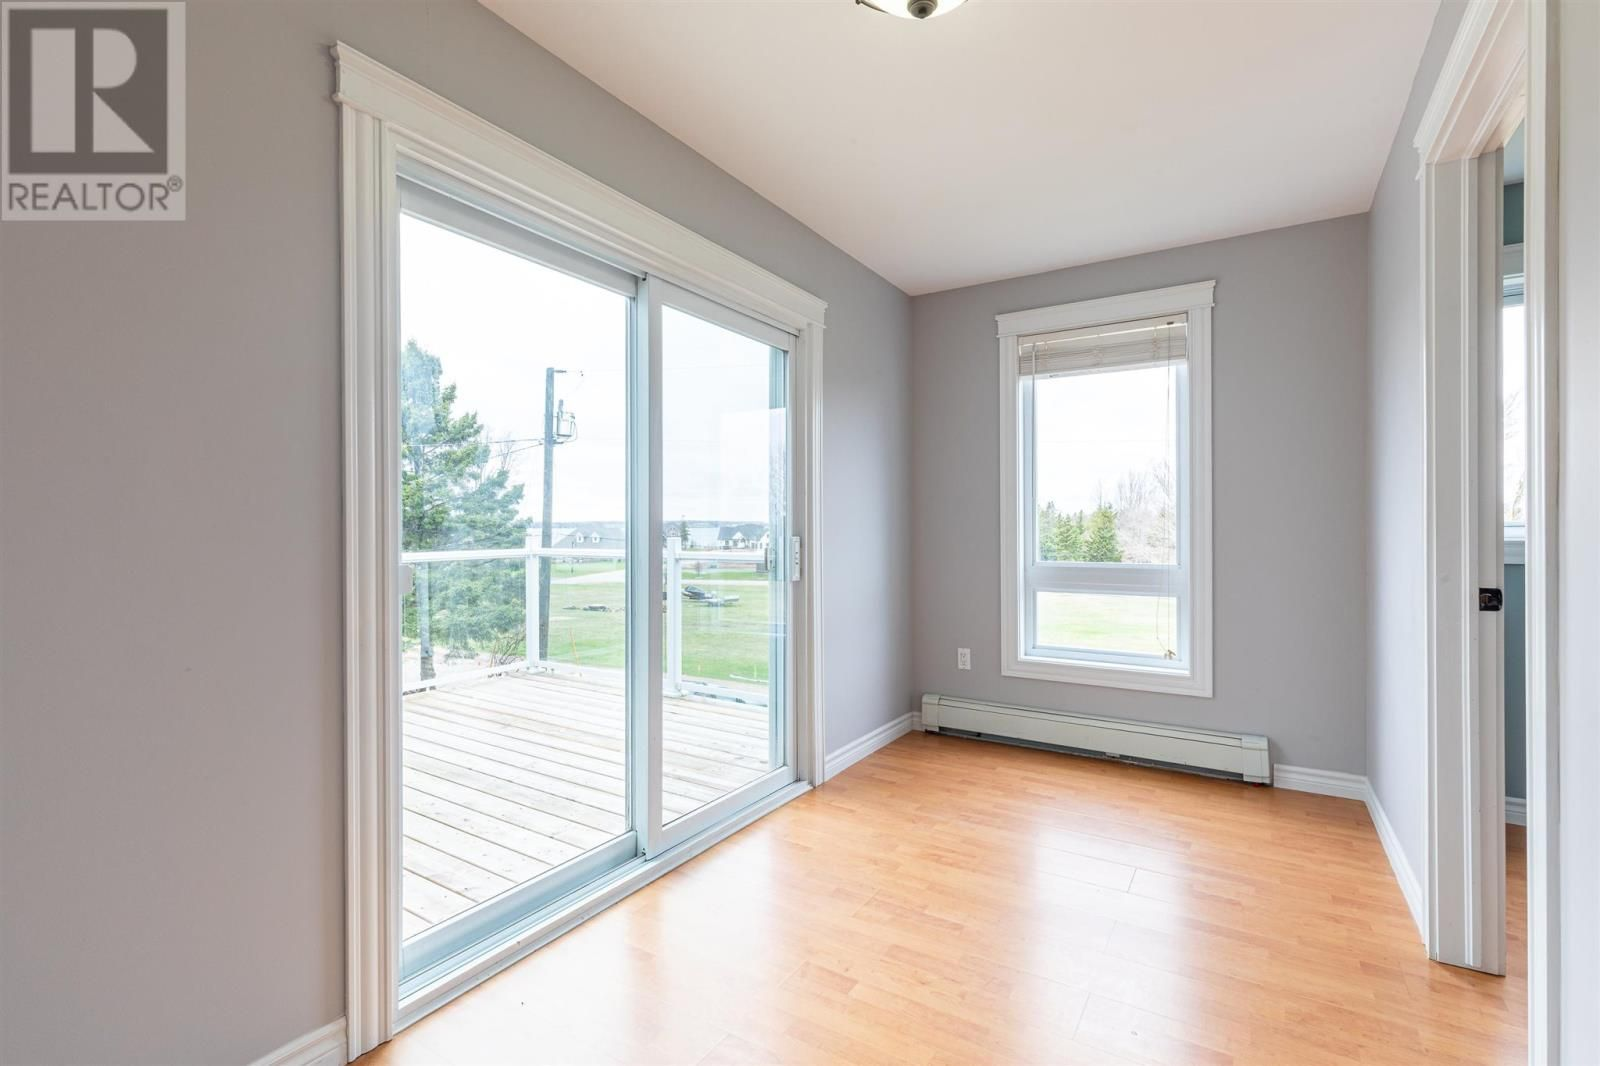 Photo 26: Photos: 5 Cherry Lane in Stratford: House for sale : MLS®# 202119303